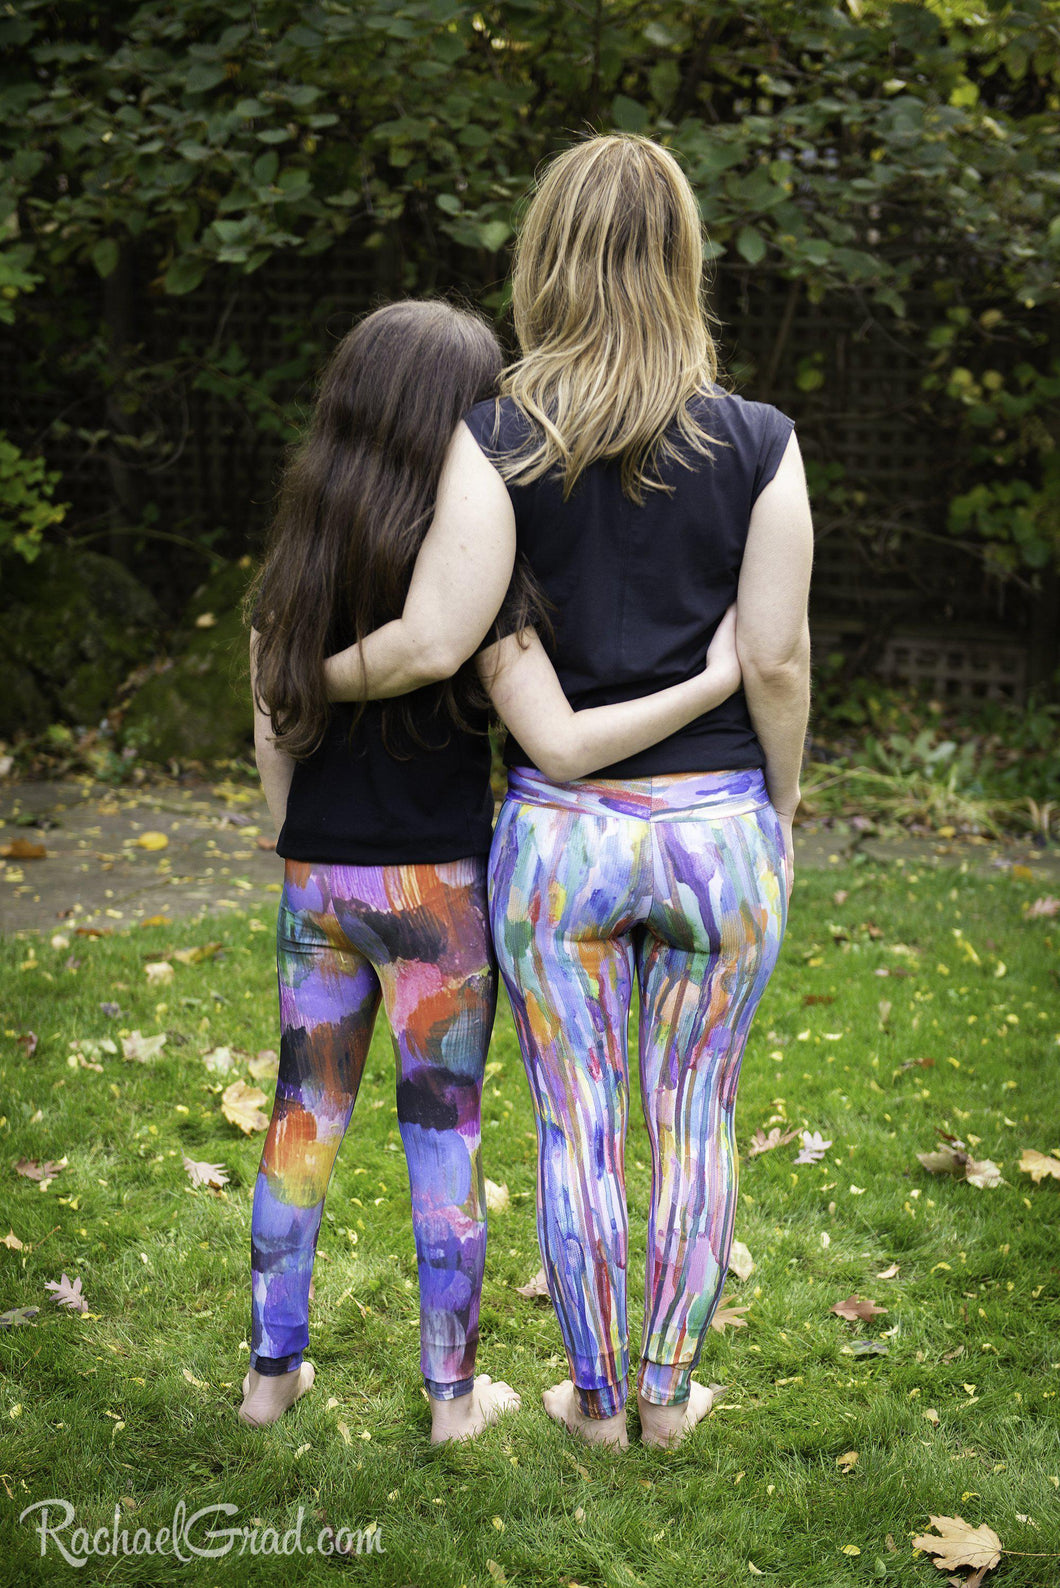 Colorful Art Leggings by Toronto Artist Rachael Grad back view on Mom and Daughter matching